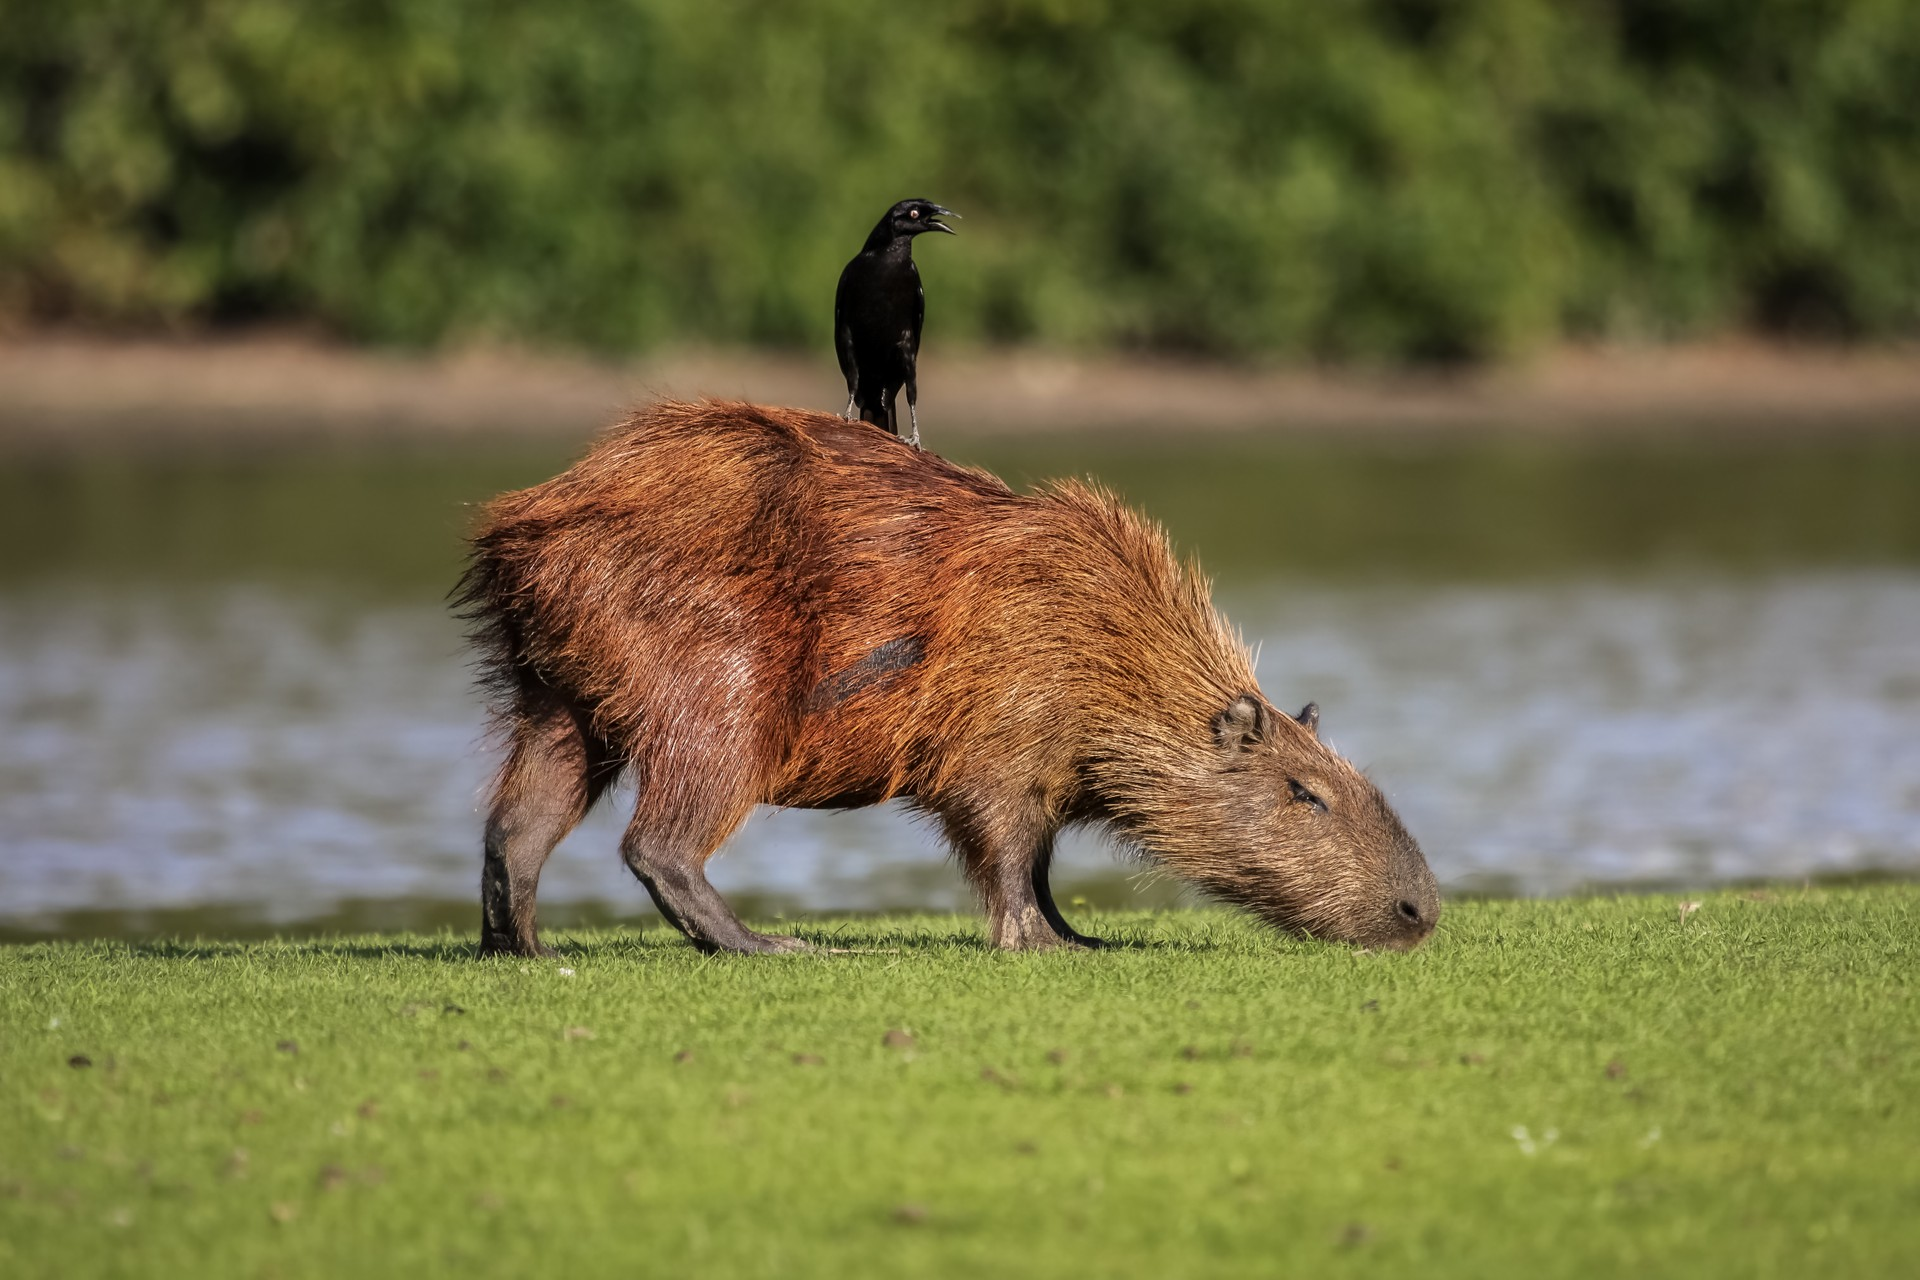 Capybara grazing in the Pantanal